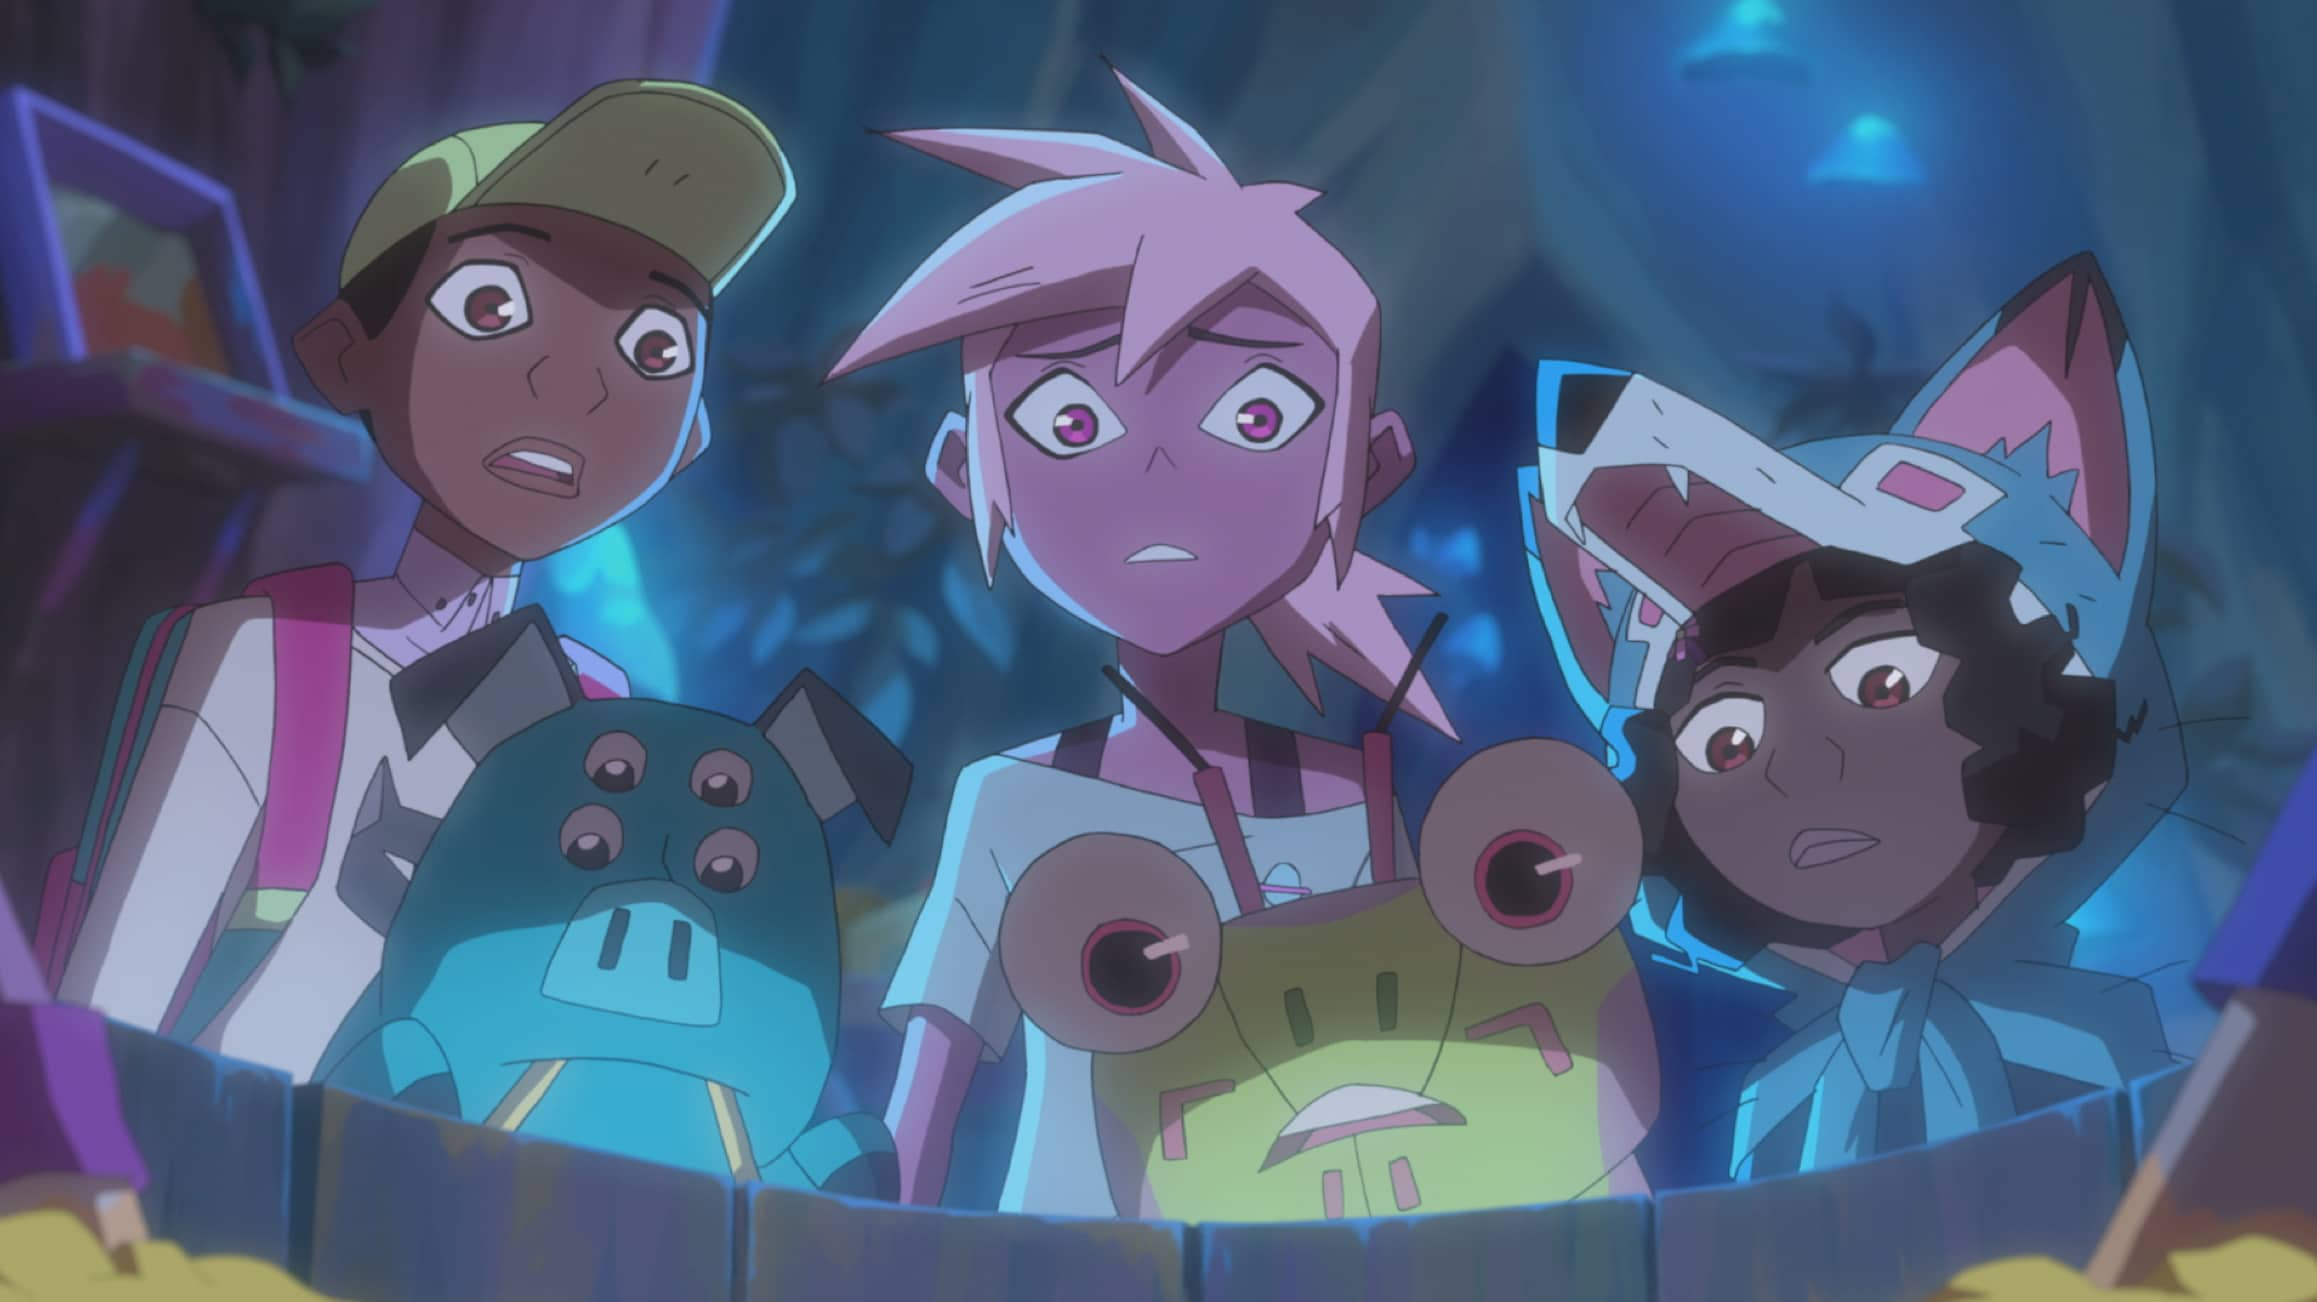 Benson (Coy Stewart), Mandu (Dee Bradley Baker), Kipo (Karen Fukuhara), Dave (Deon Cole), Wolf (Sydney Mikayla). DreamWorks Kipo and The Age of Wonderbeasts will return to Netflix June 12, for a second season filled with adventures through the whimsical, weird post-apocalyptic world of Las Vistas.